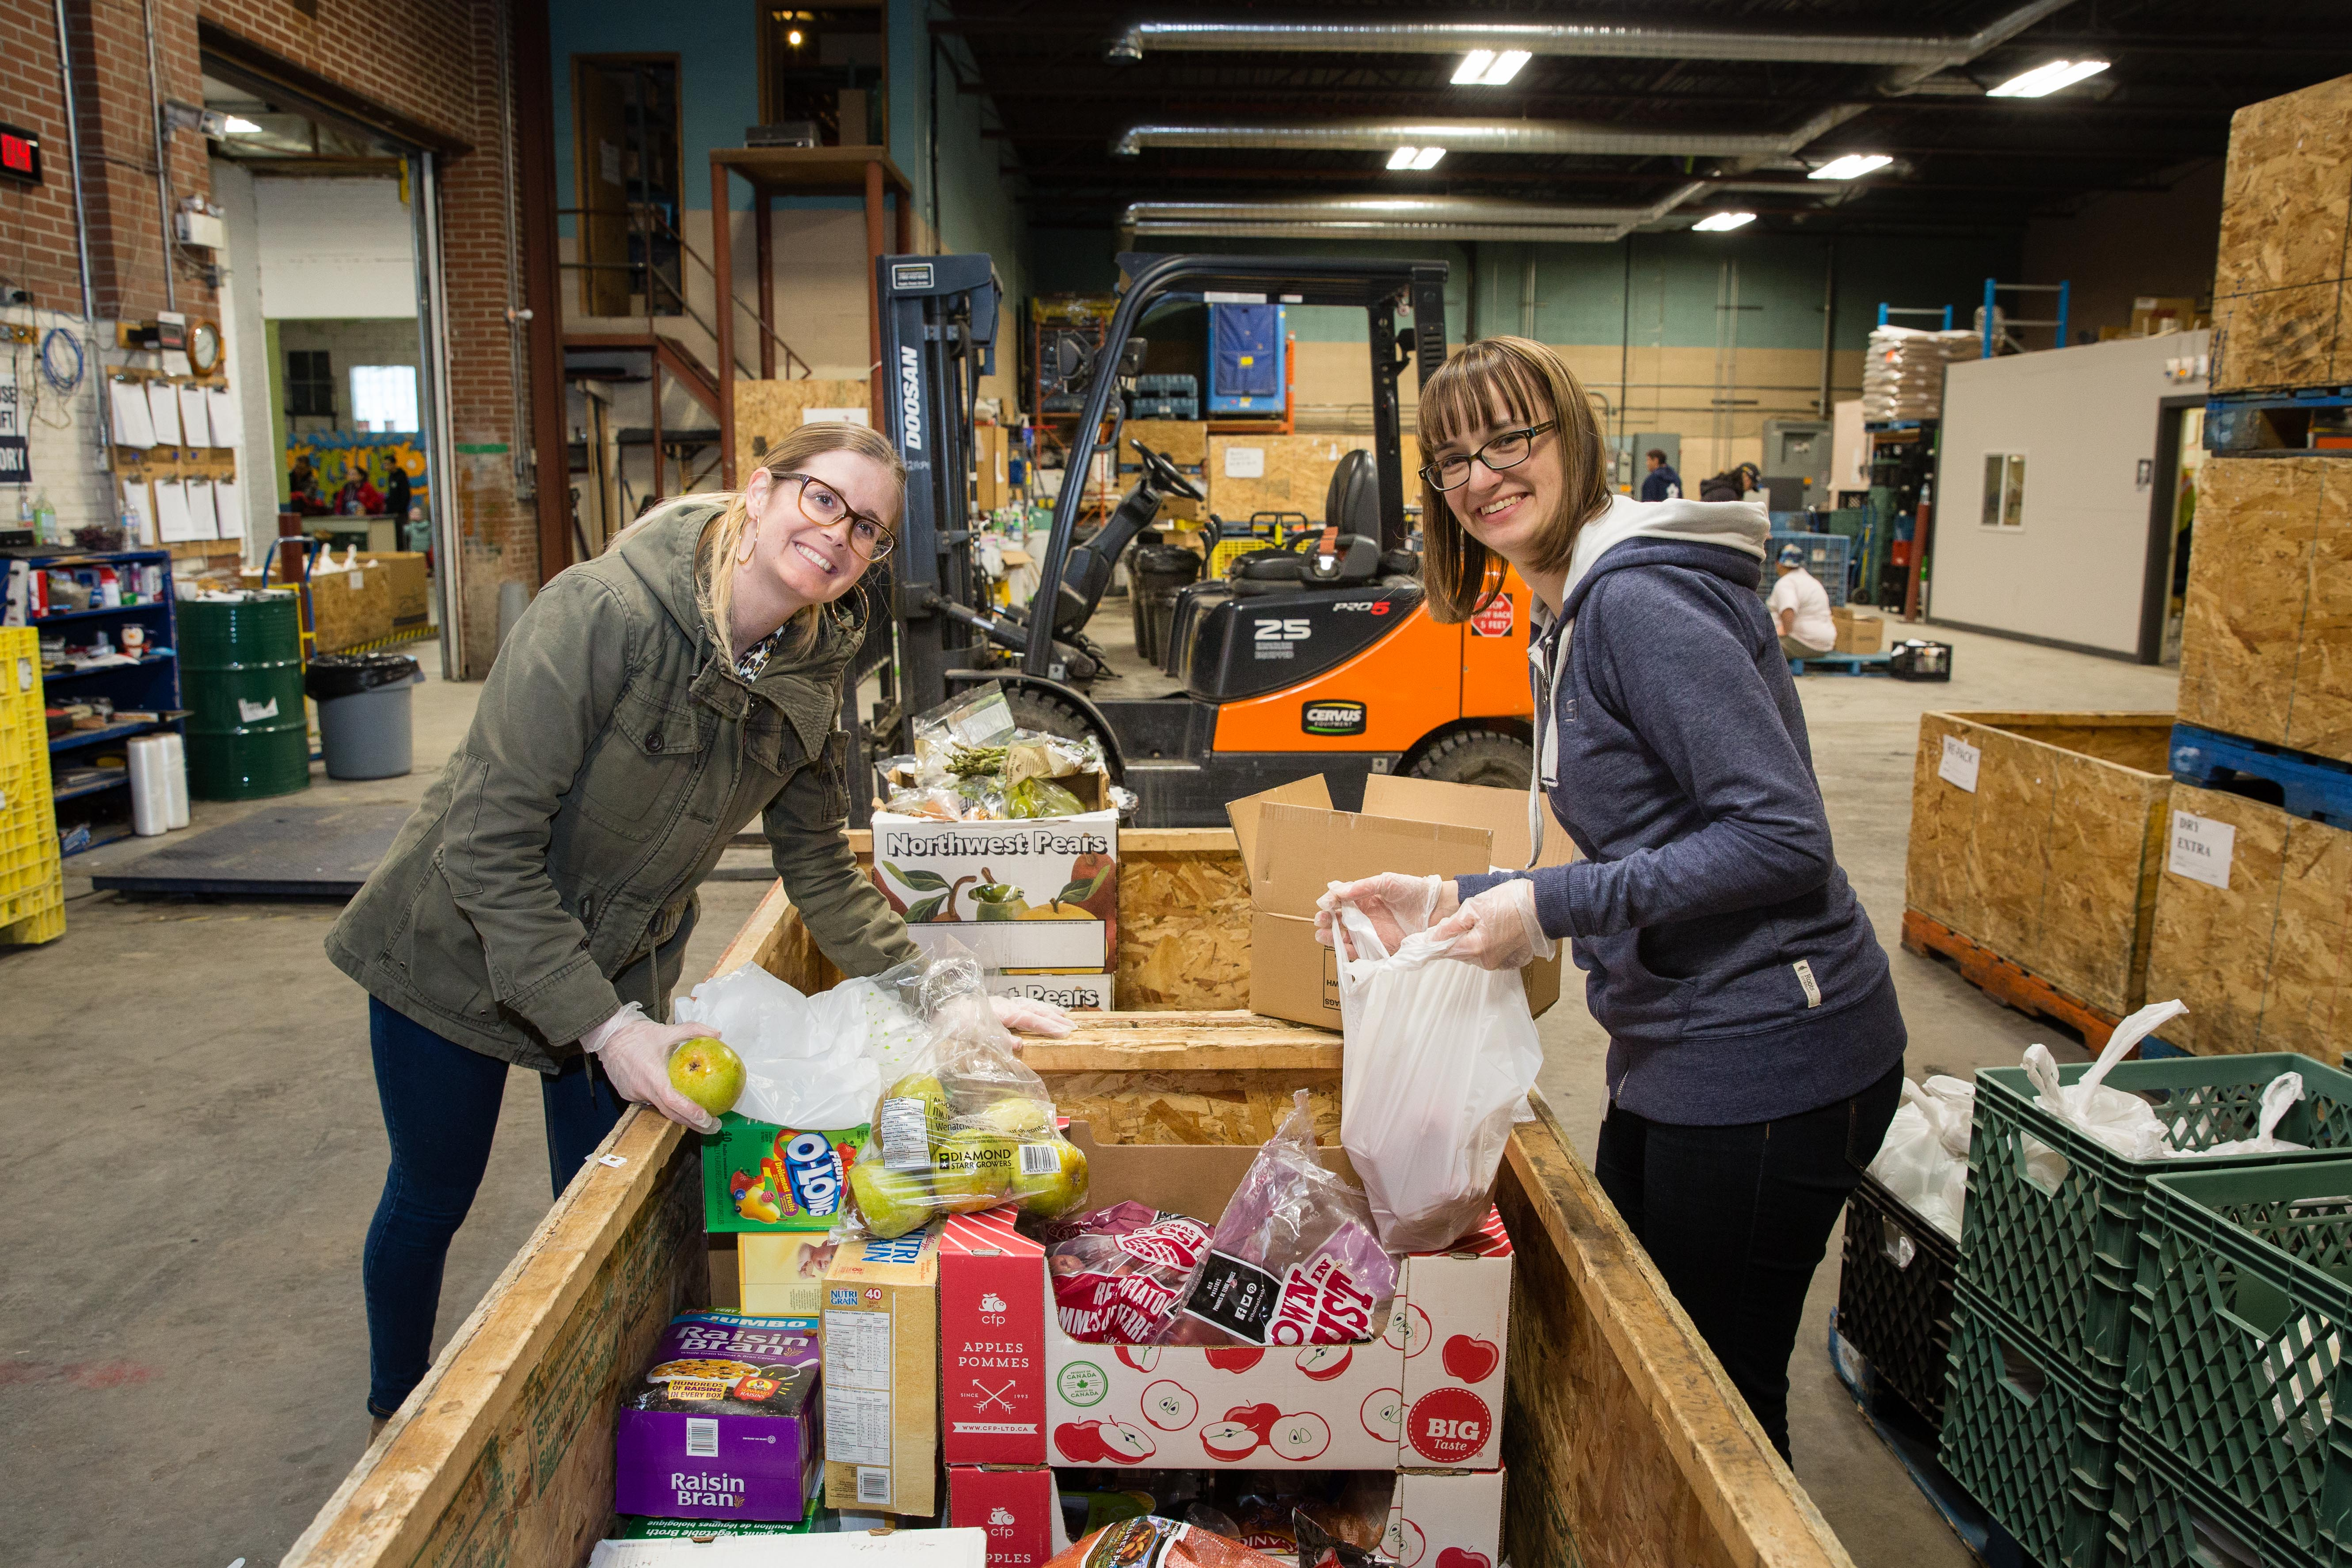 two src employees sort bins of cans at food bank